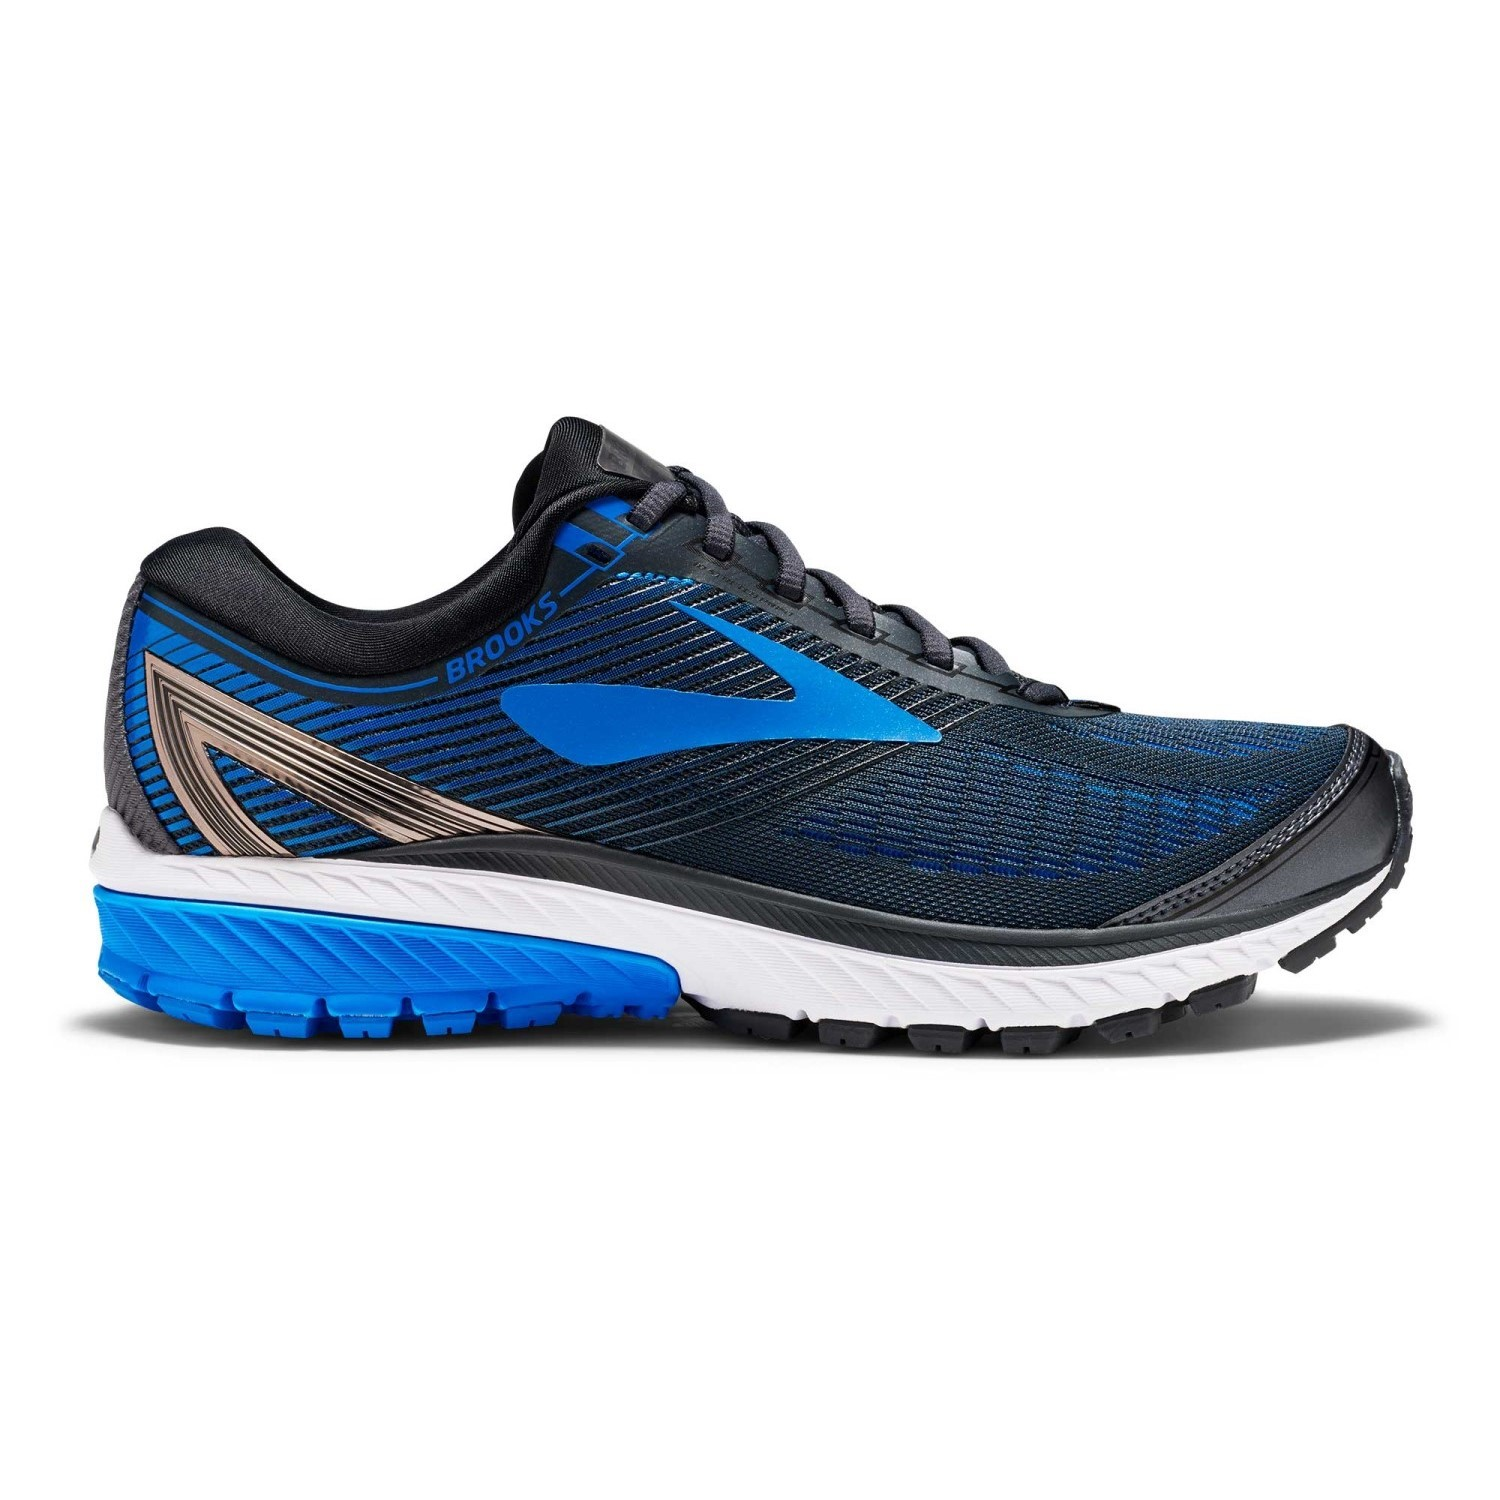 95b17a7b8d8ca Brooks Ghost 10 - Mens Running Shoes - Metallic Charcoal Brooks Blue ...